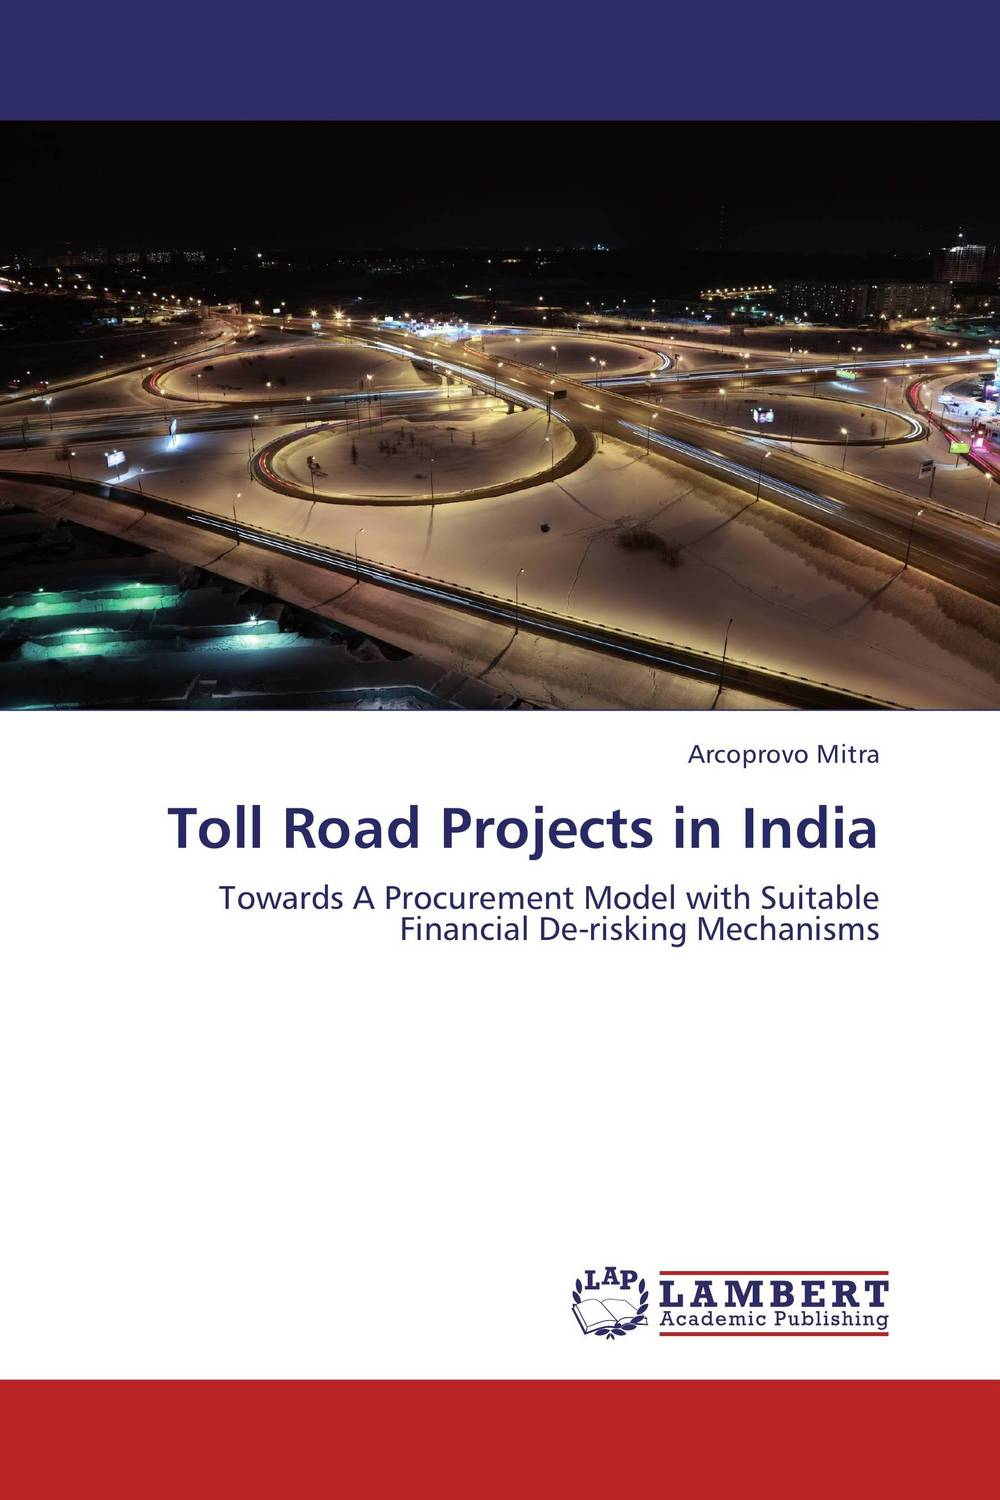 Toll Road Projects in India momentum часы momentum 1m sp17ps0 коллекция heatwave